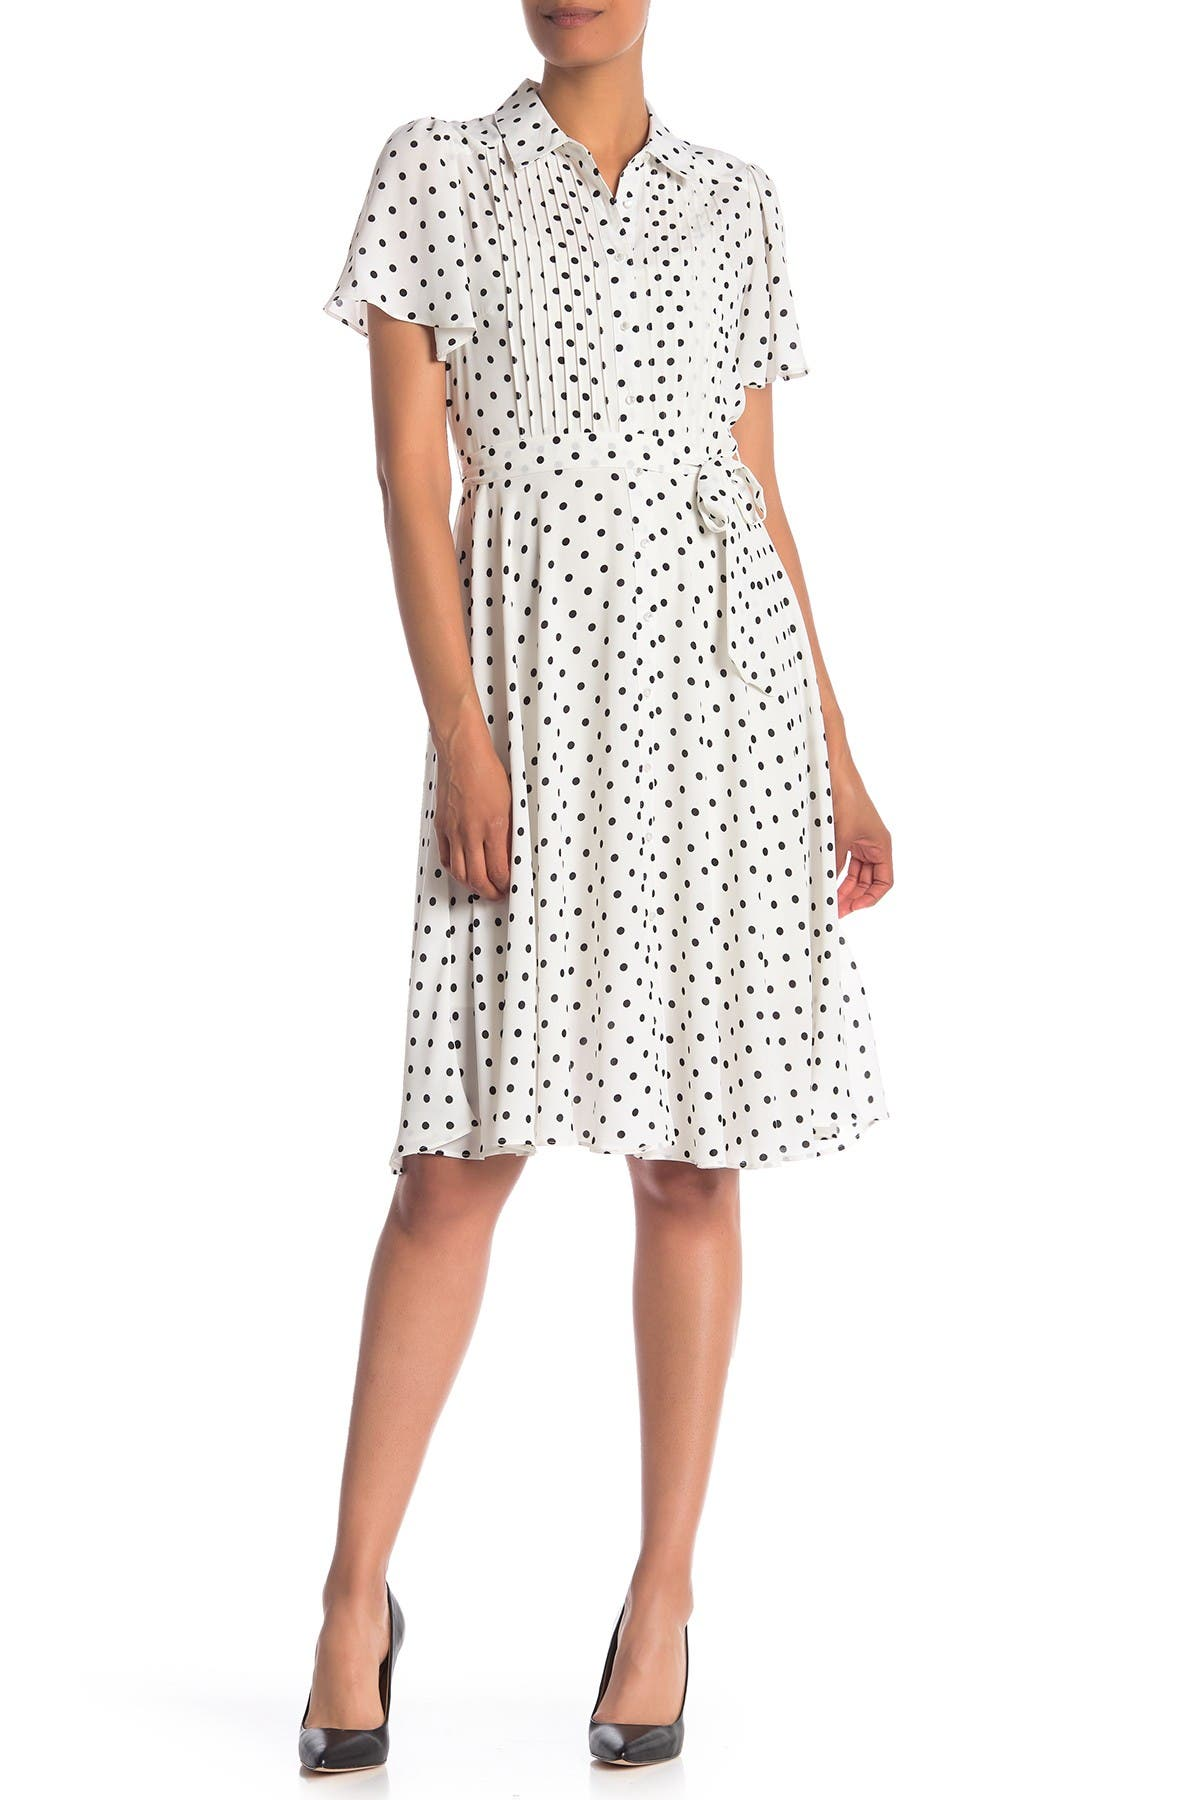 1940s Dress Styles NANETTE nanette lepore Polka Dot Flutter Sleeve Pintuck Dress Size 12 - Cancrevbk at Nordstrom Rack $39.97 AT vintagedancer.com